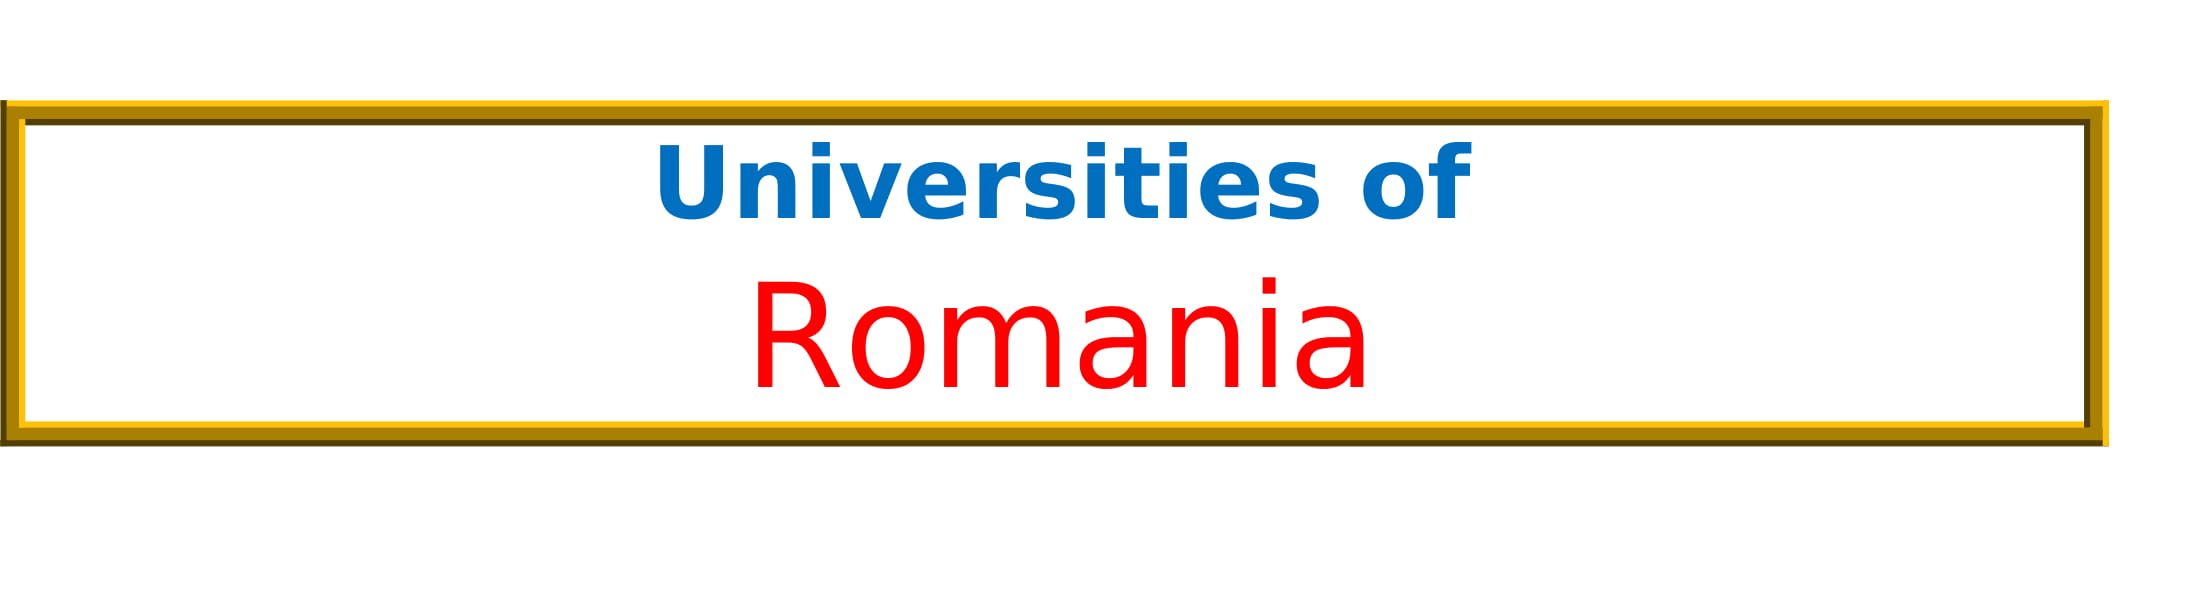 List of Universities in Romania